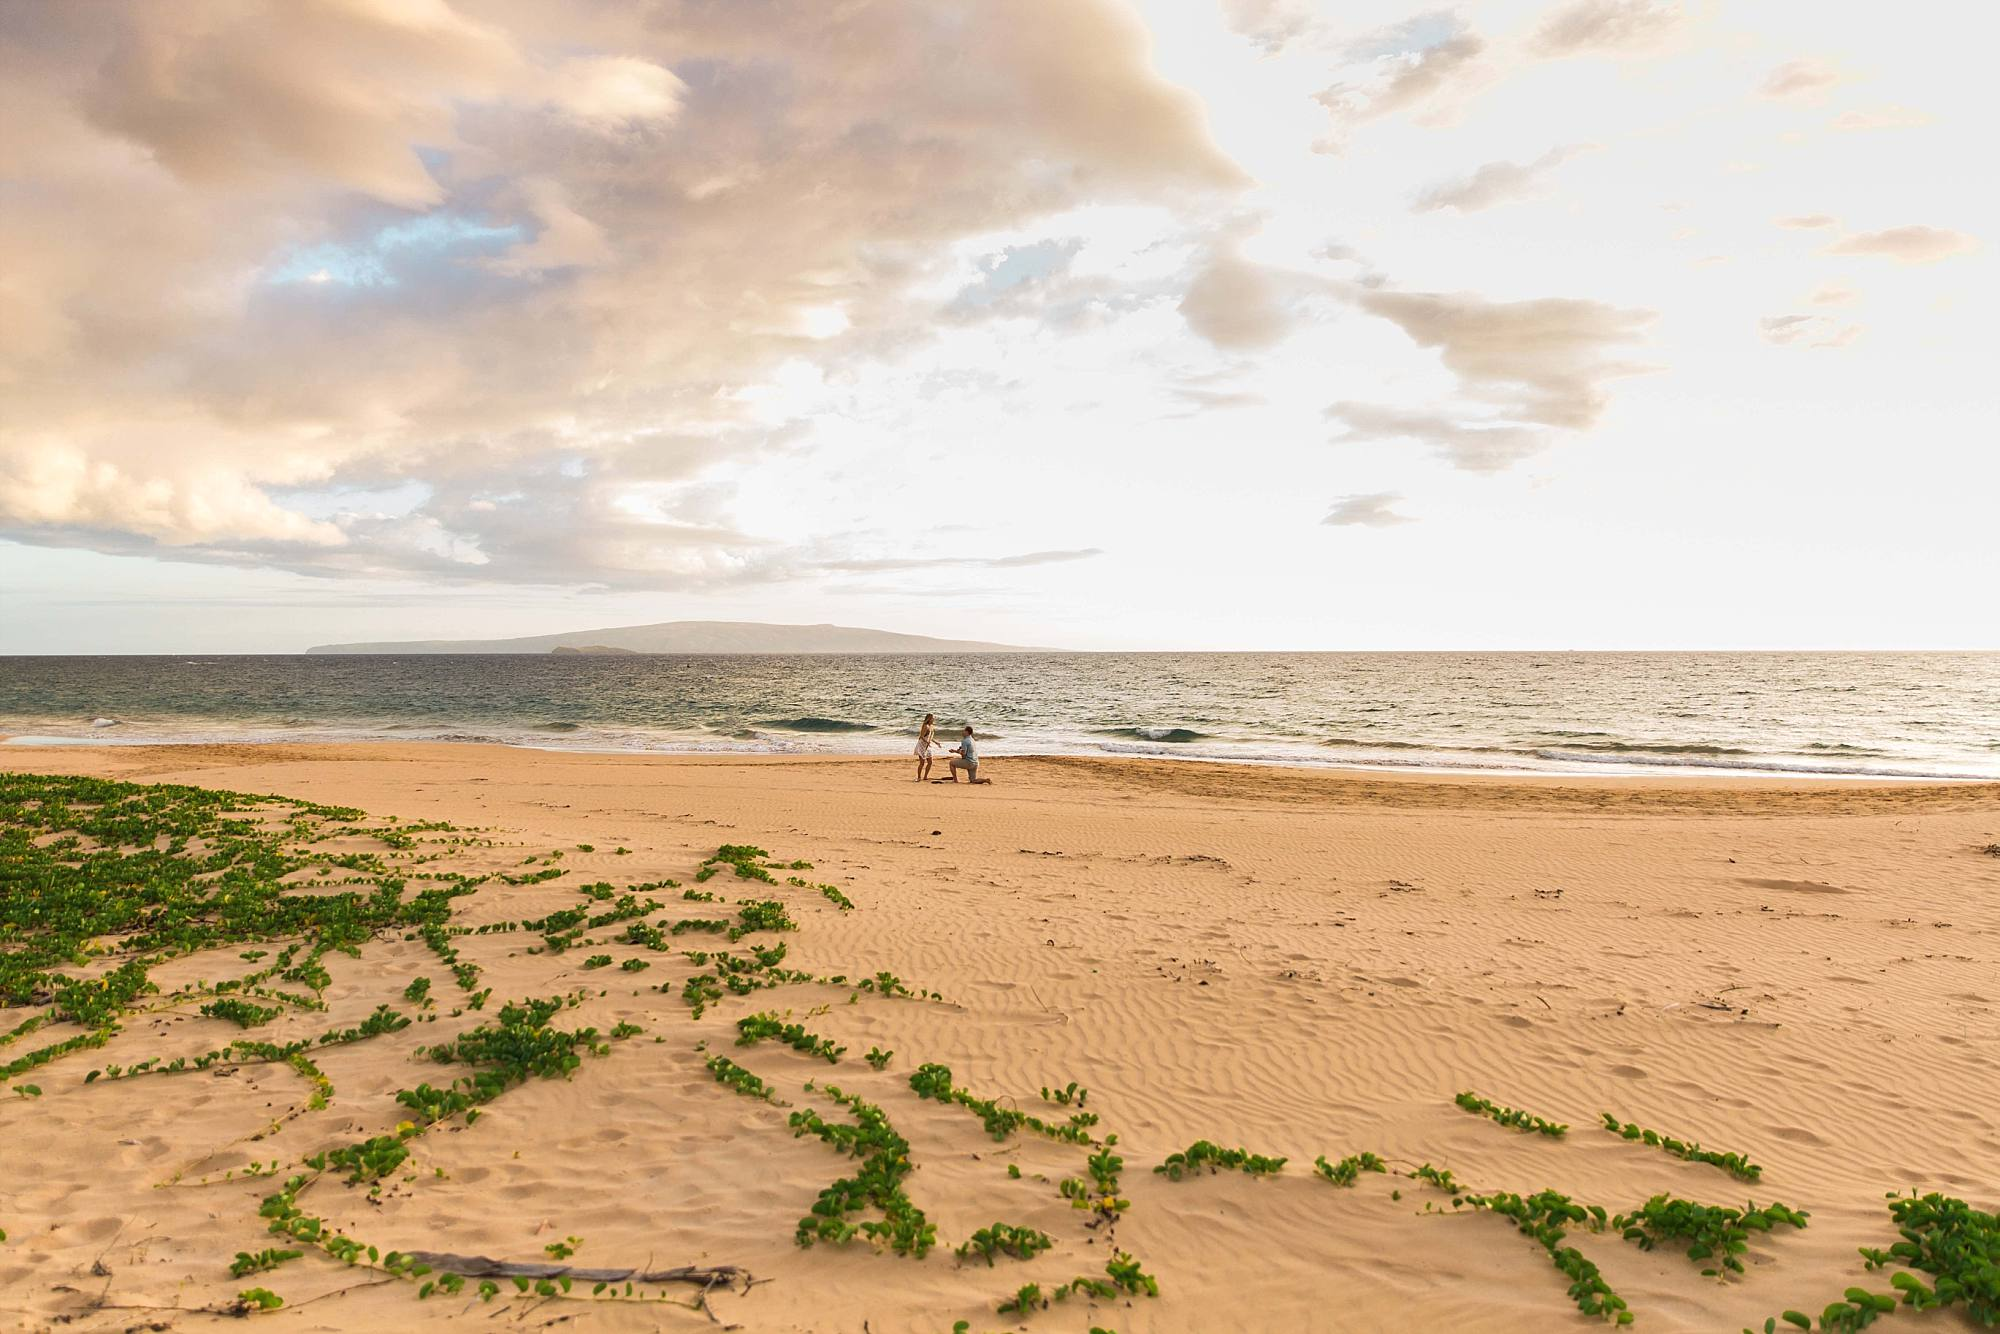 gorgeous landscape shot of wide open maui beach with man down on one knee in the sand